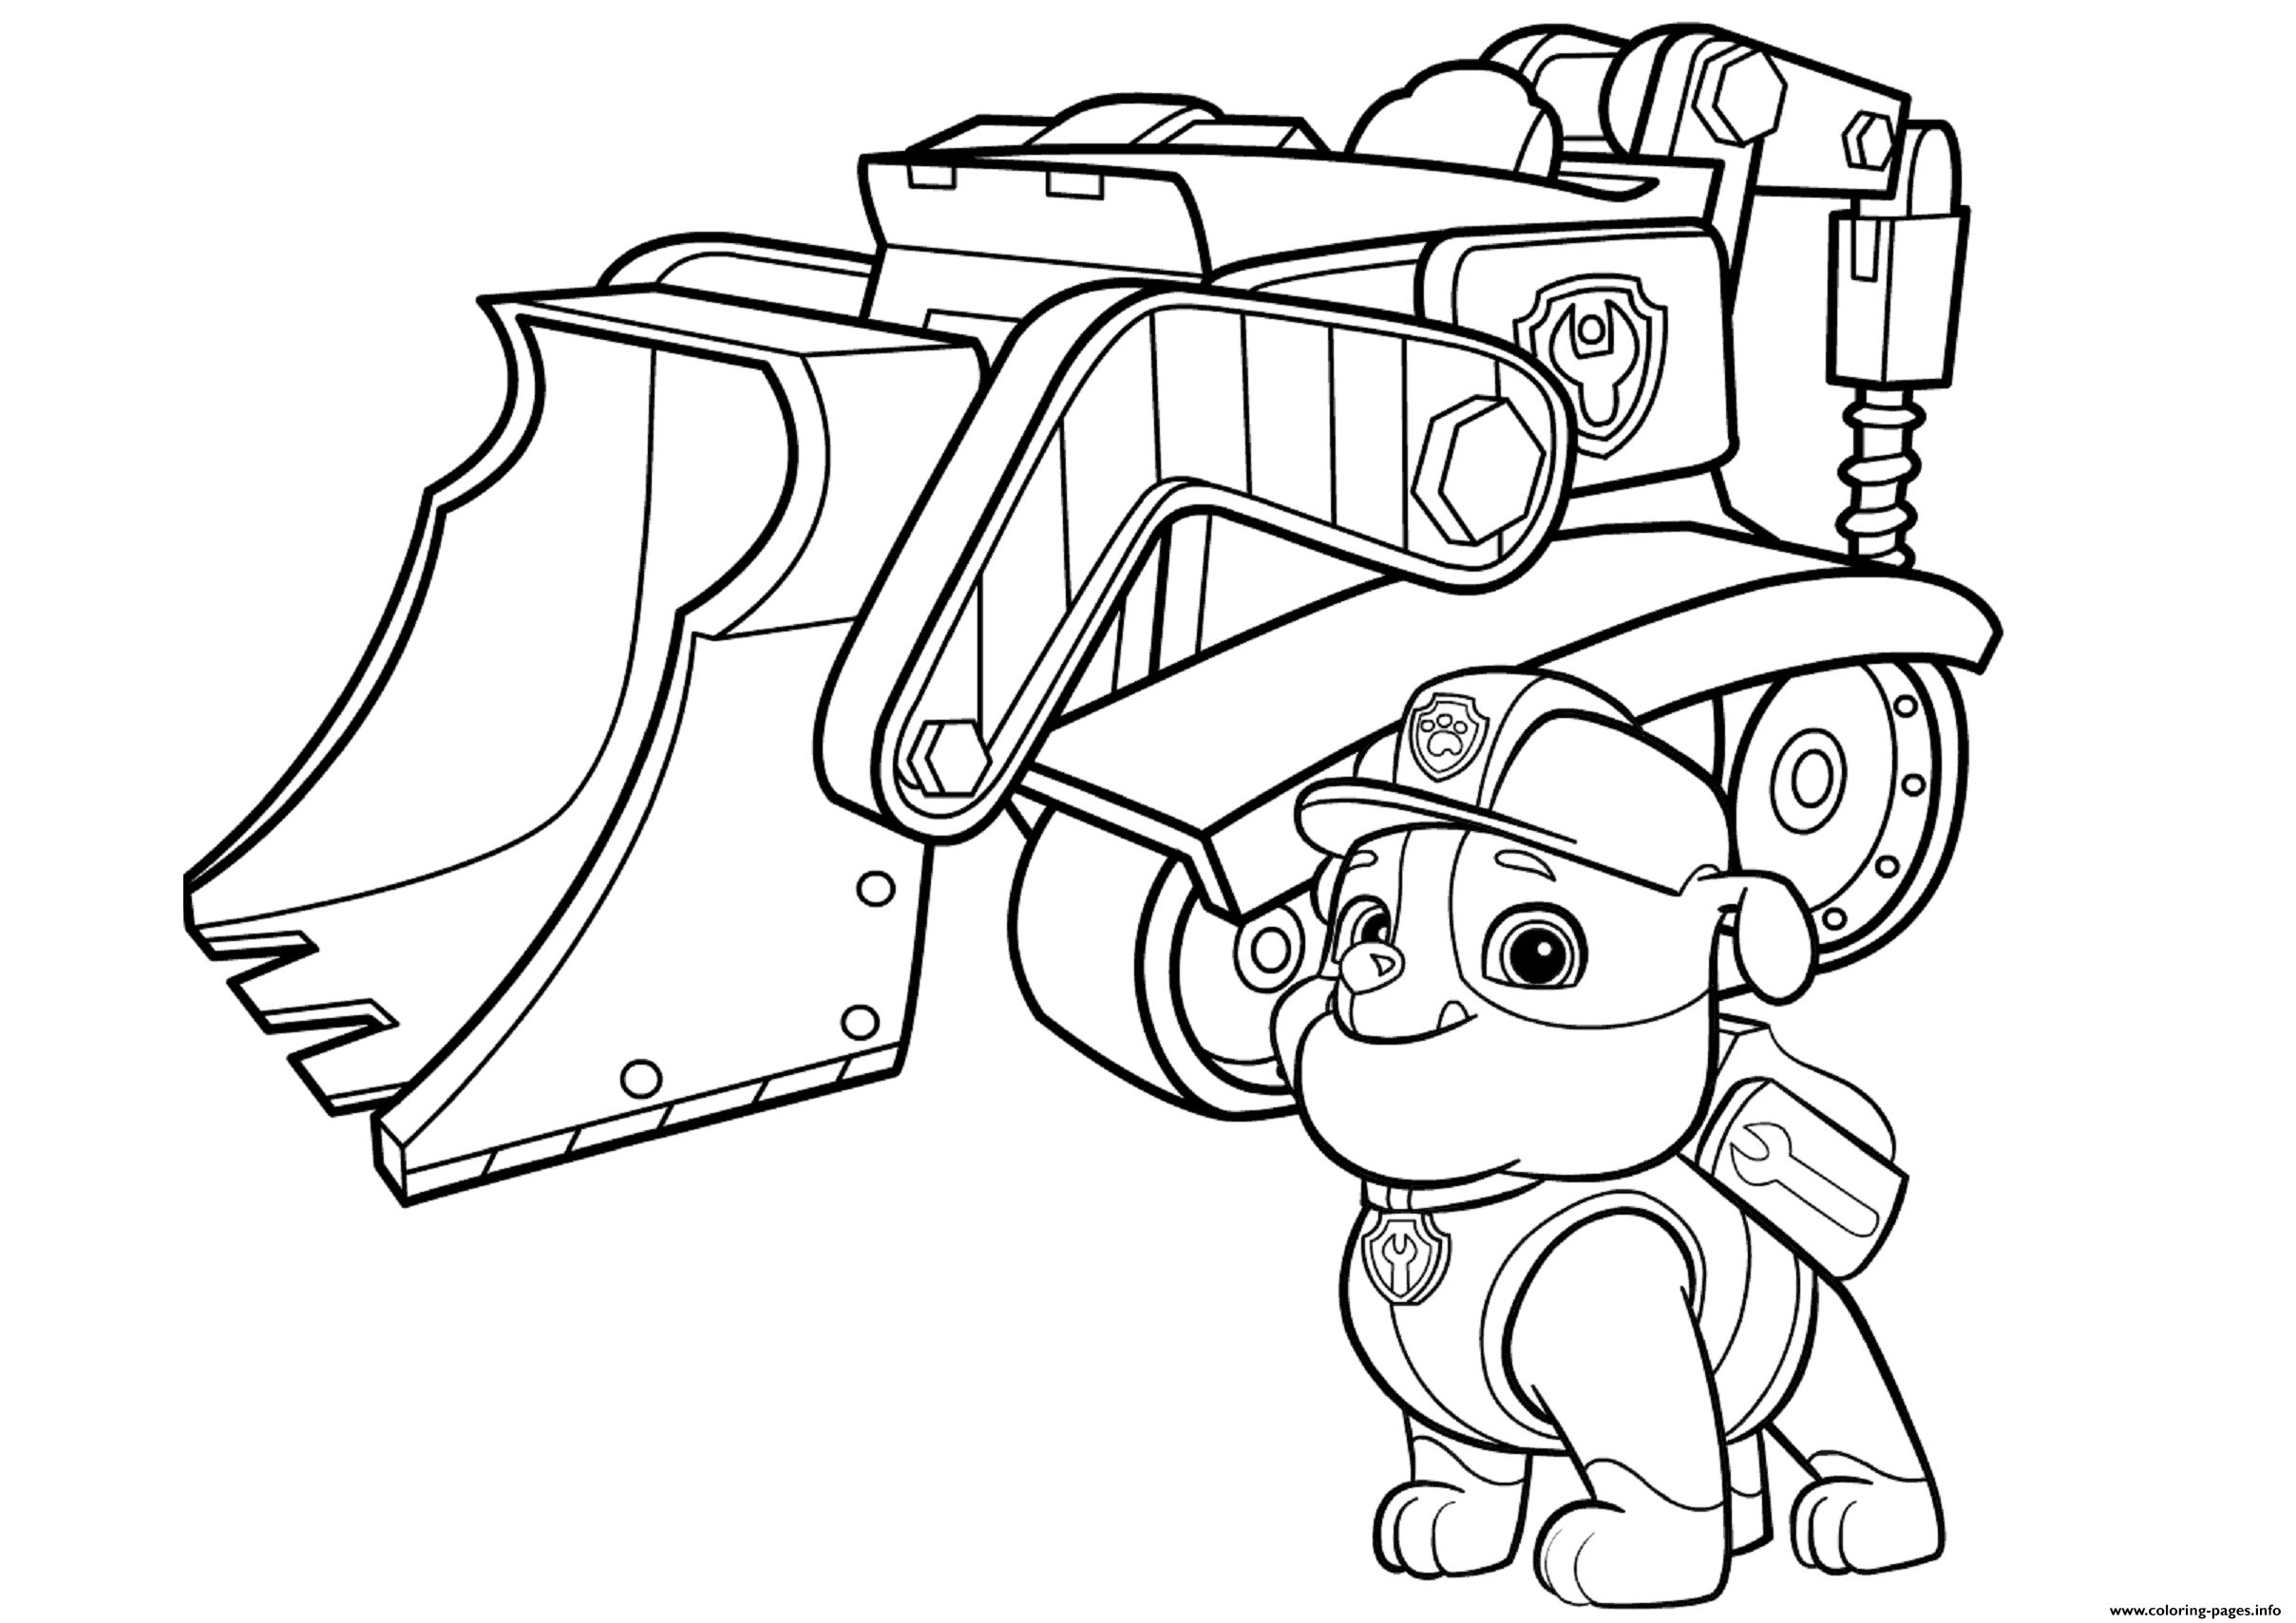 image relating to Paw Patrol Printable Pictures identified as Totally free PAW Patrol Coloring Web pages - Joy is Handmade